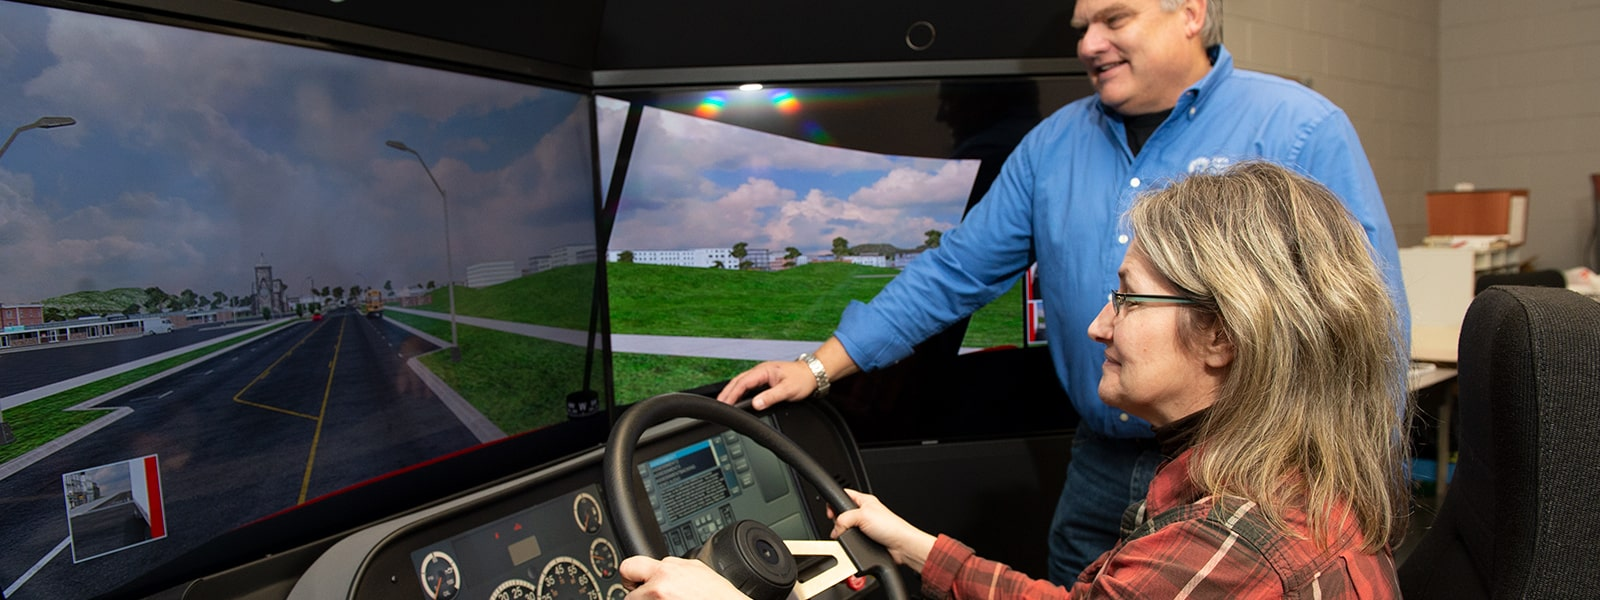 Image of student and instructor using simulator